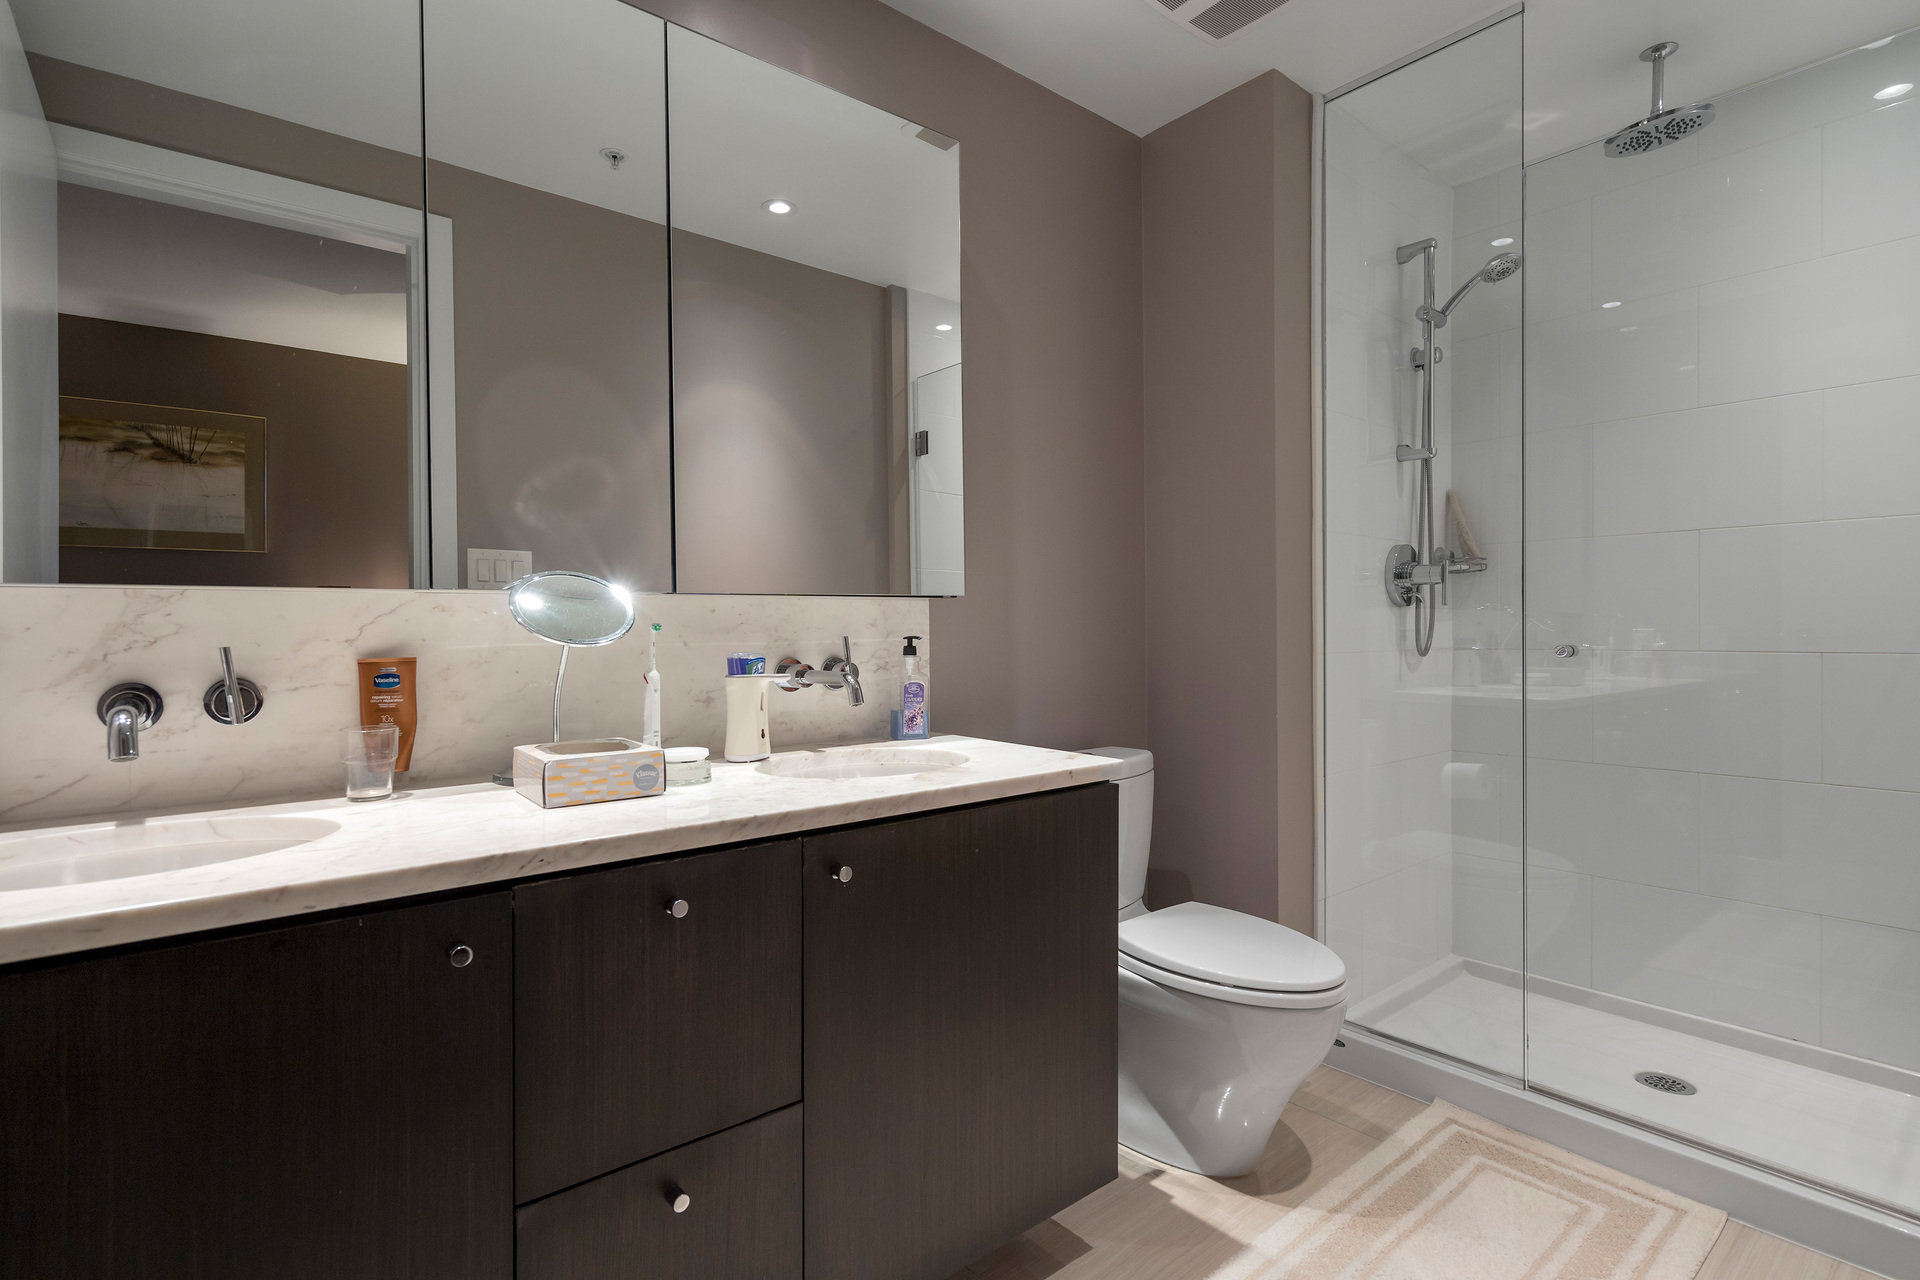 407-150-15th-st-w-360hometours-11 at 407 - 150 W 15th Street, Central Lonsdale, North Vancouver